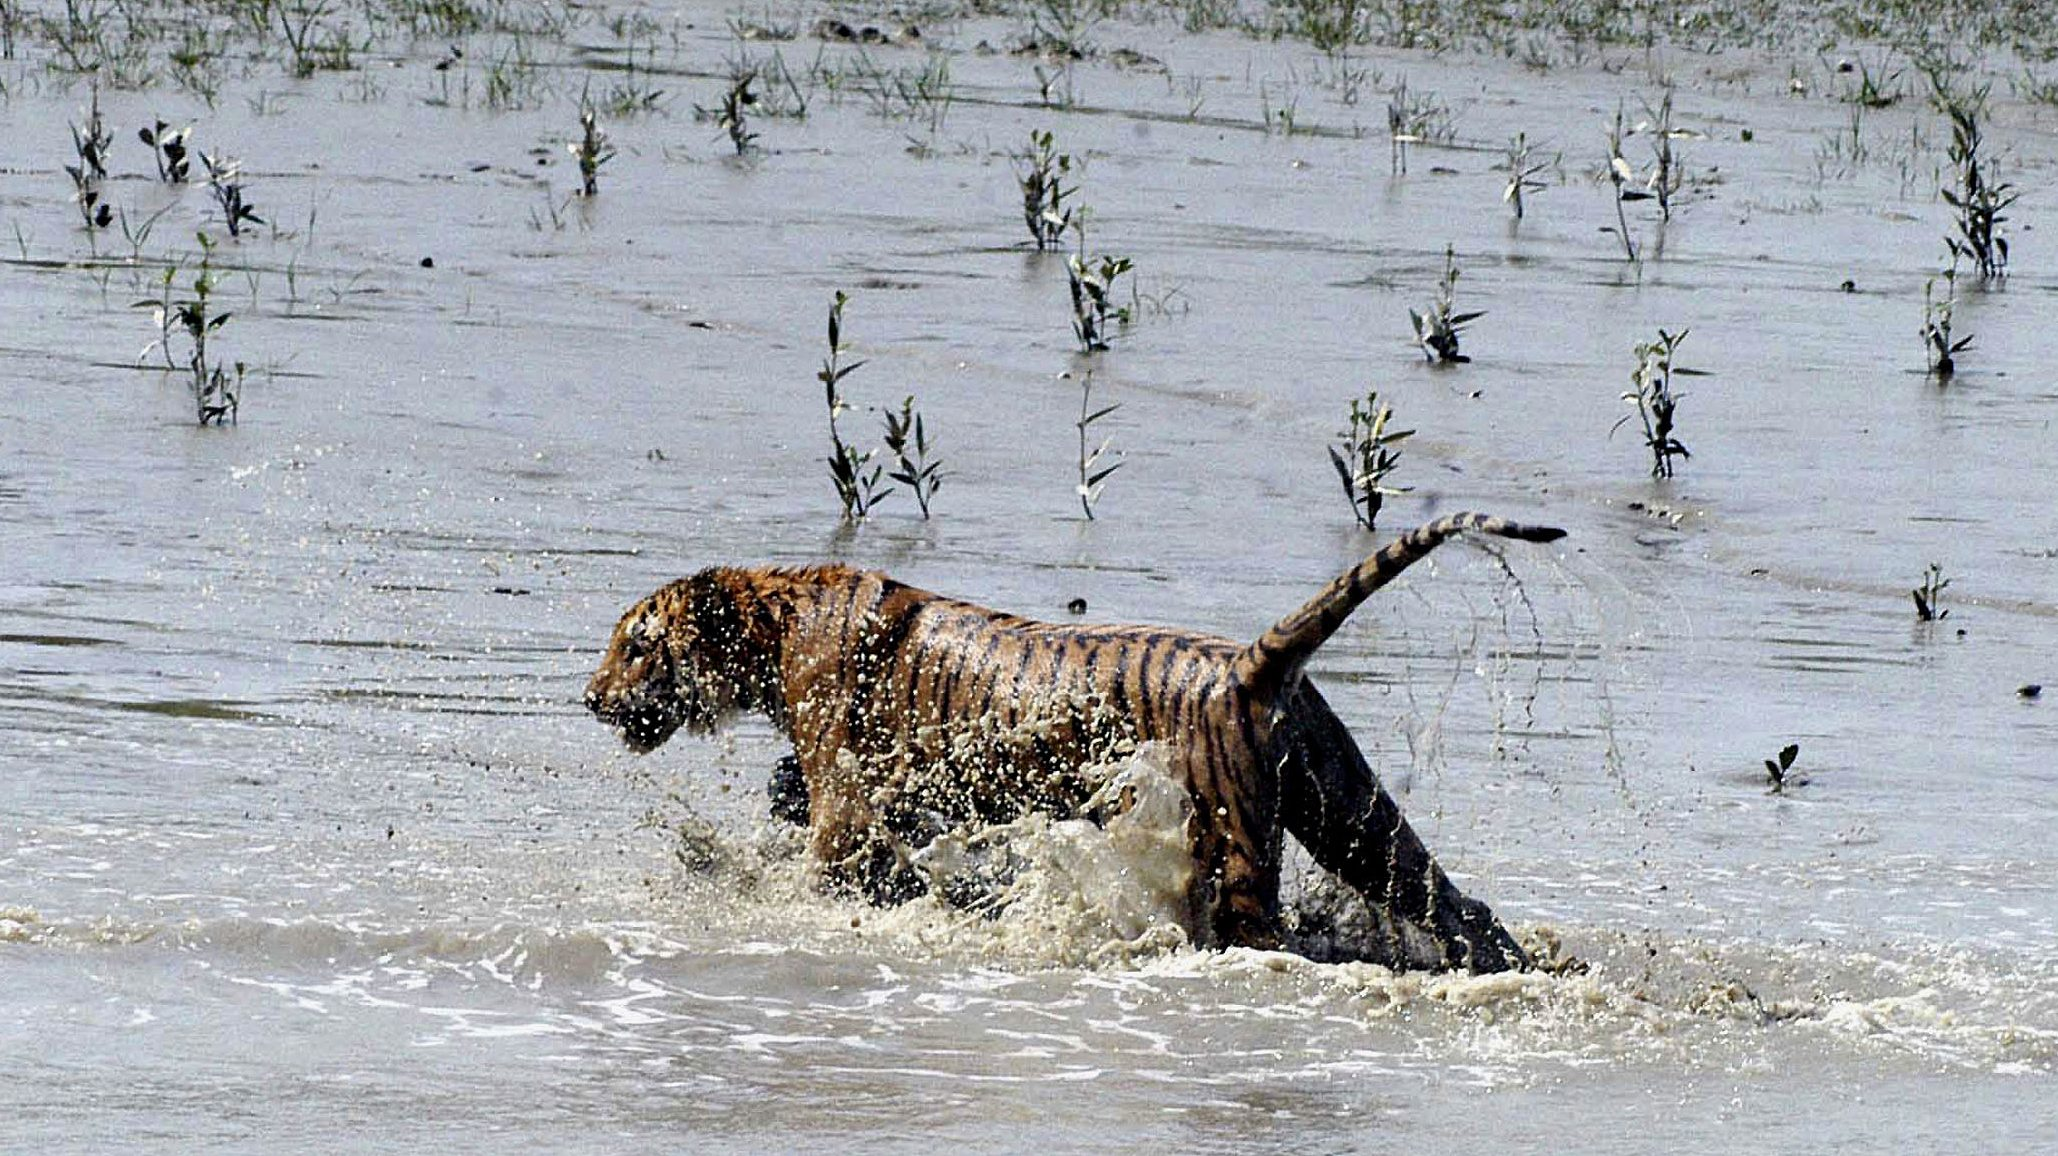 These Indians battle tigers every day. But it's politics they fear now